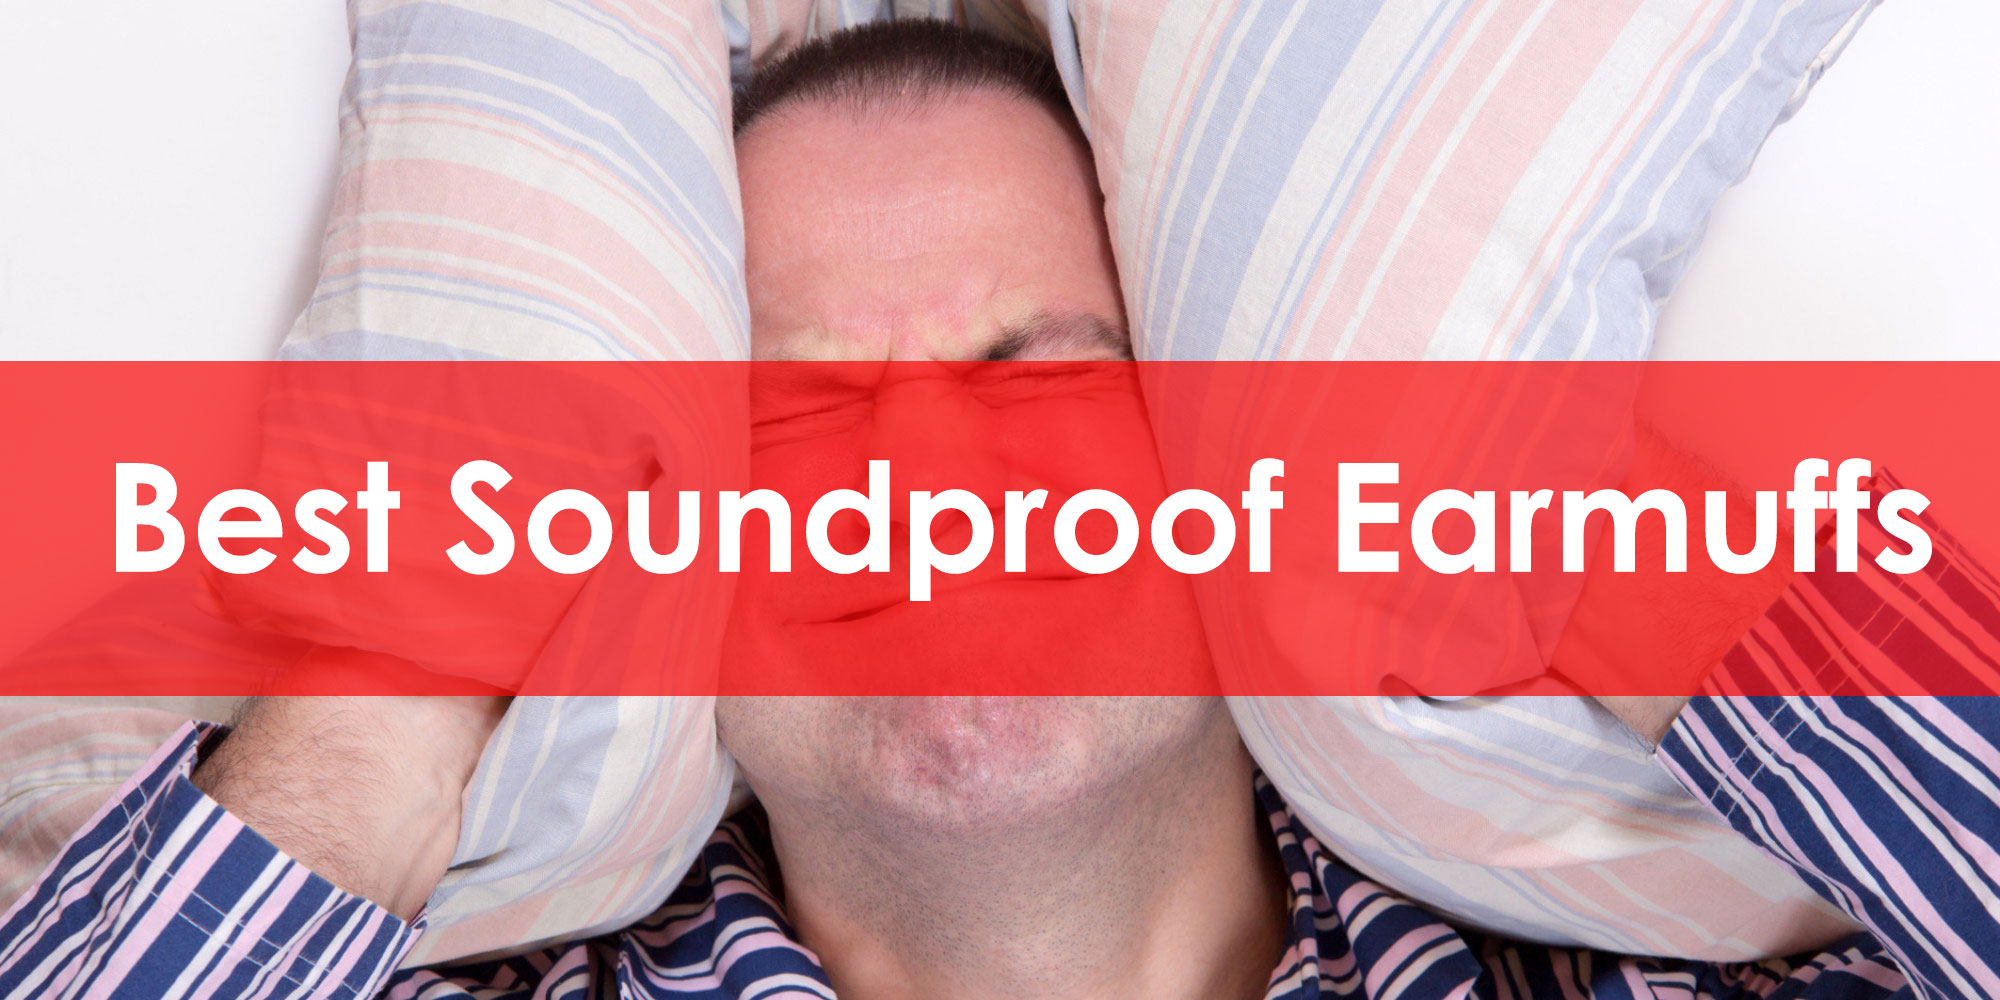 Best-Soundproof-Earmuffs-for-Sleeping